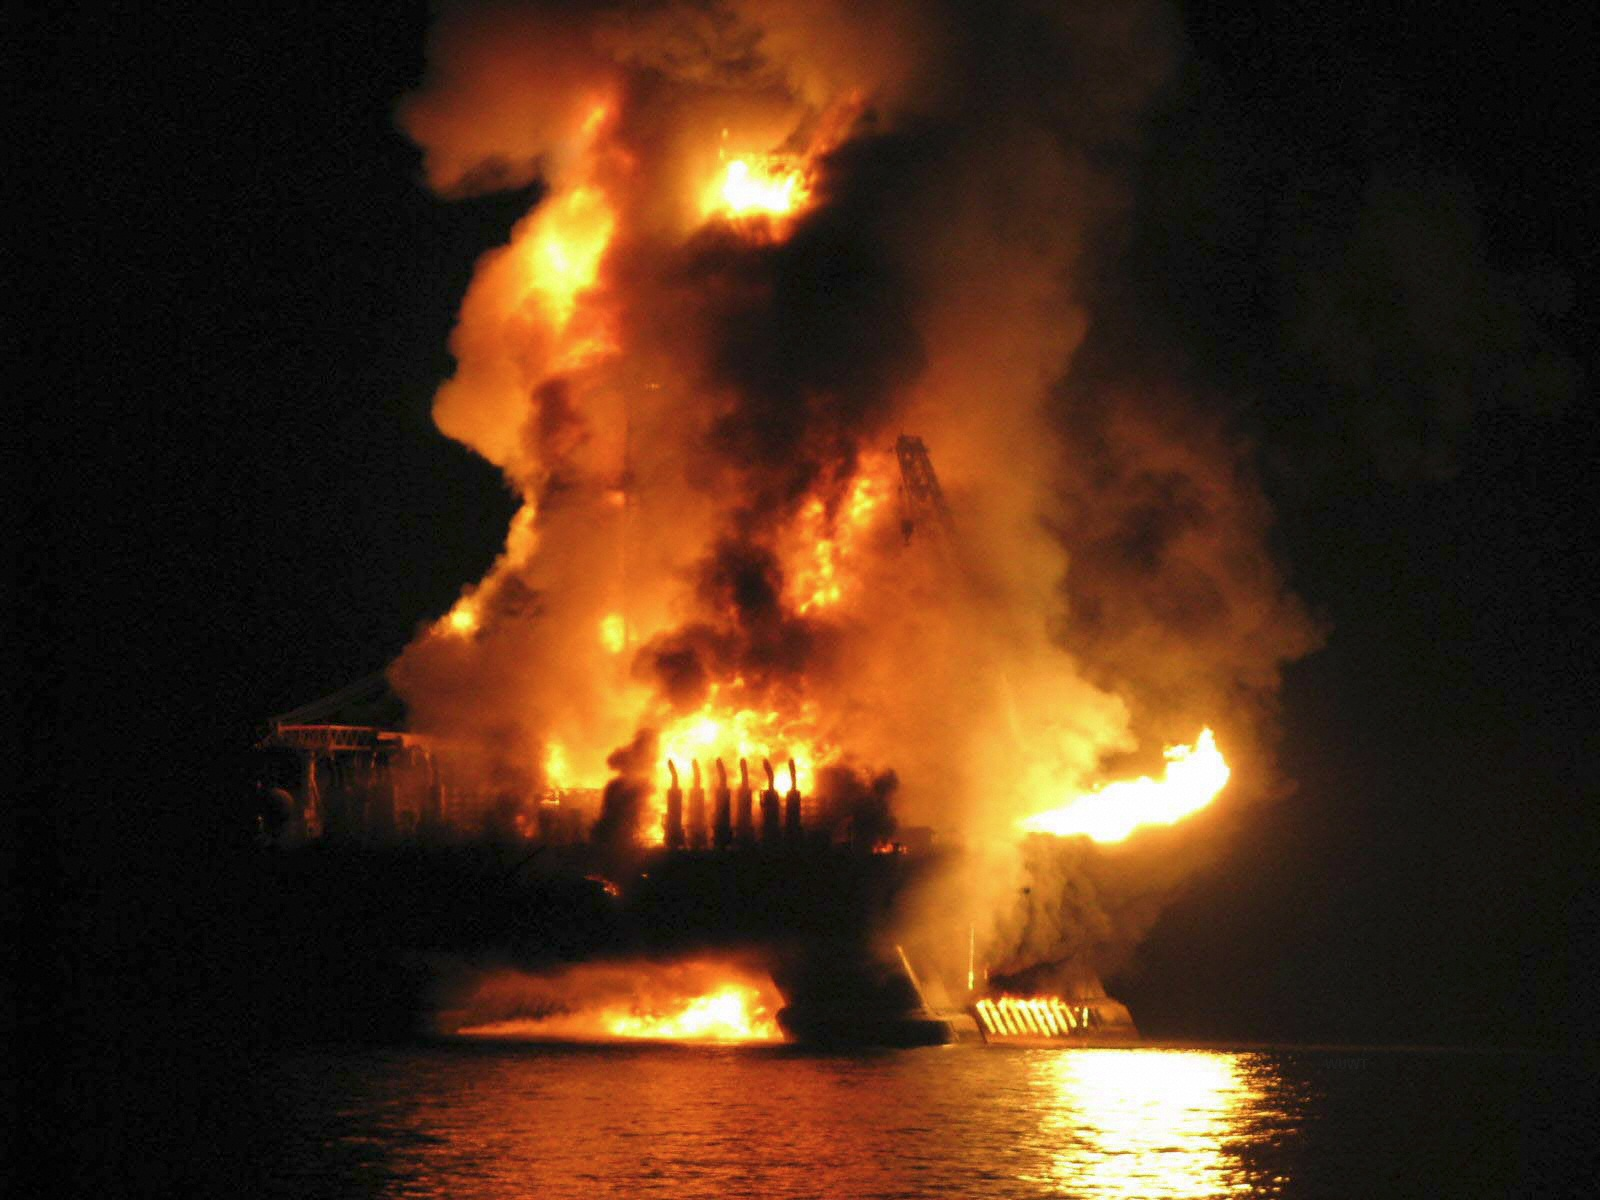 BP's reckless conduct caused Deepwater Horizon oil spill, judge rules